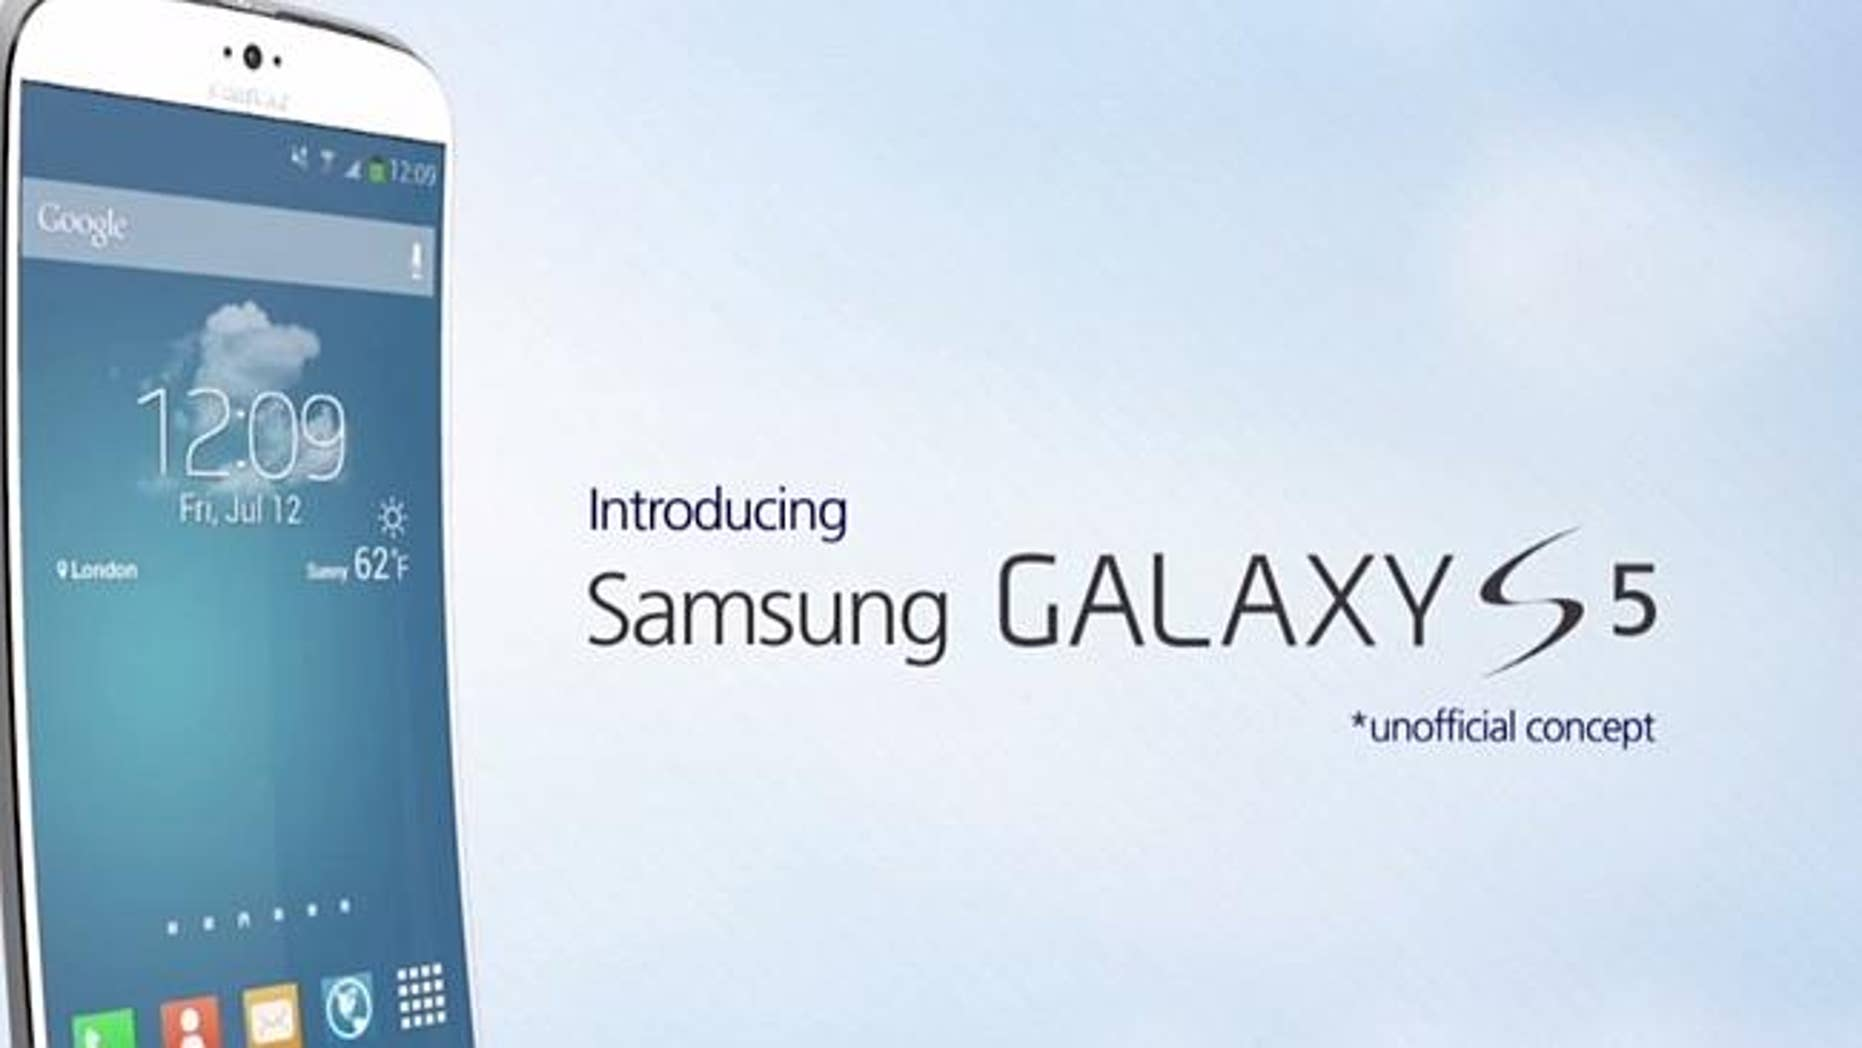 Will the Samsung Galaxy S5 come with a curved body?